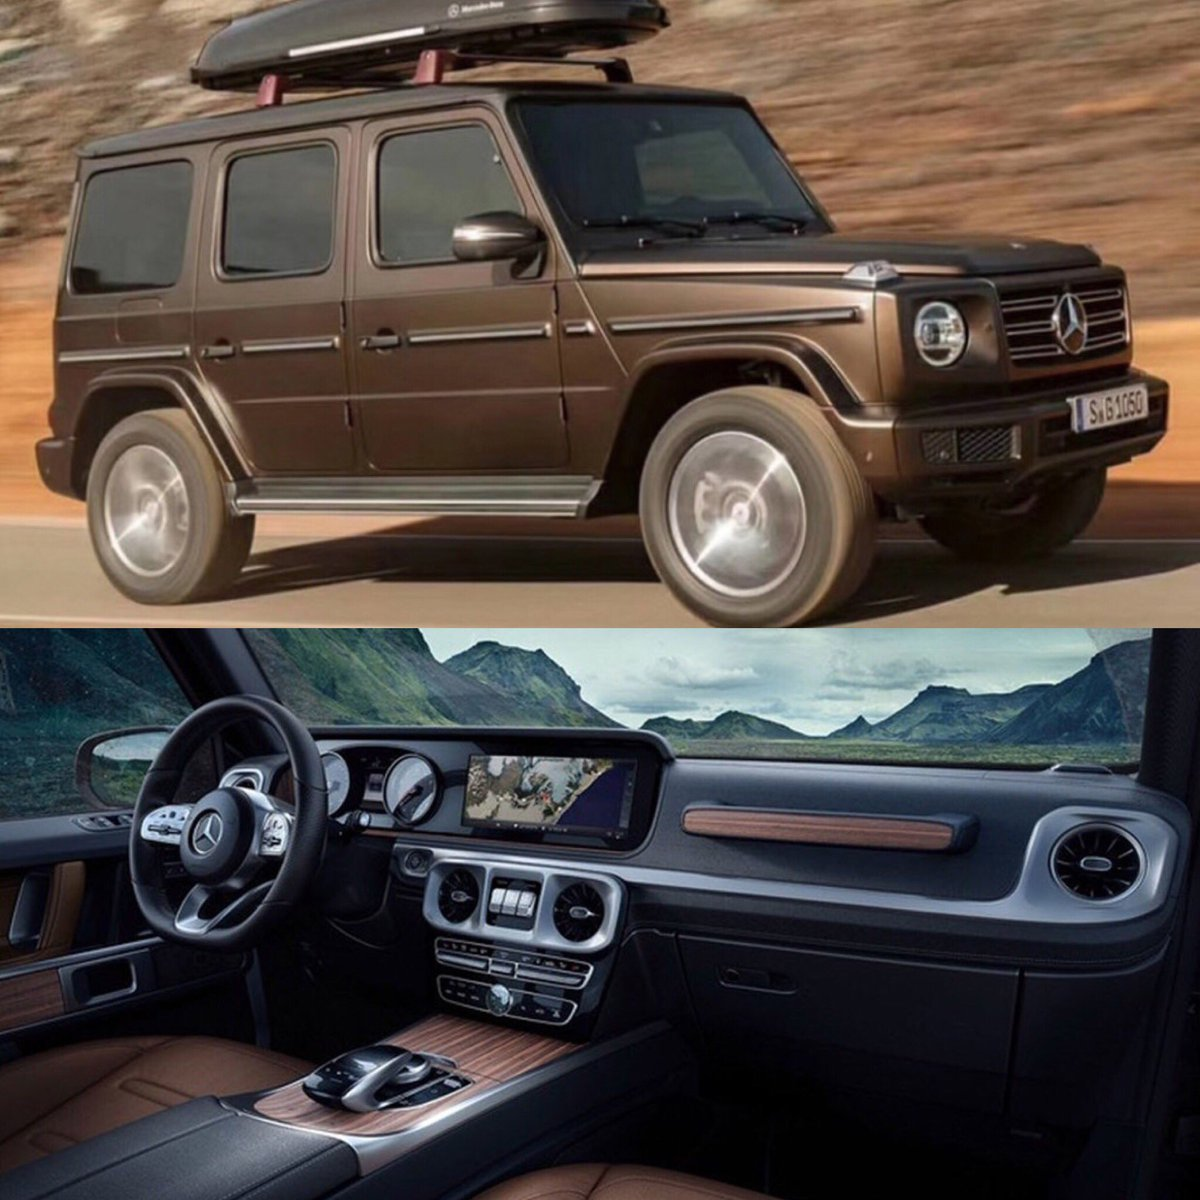 Carchayce On Twitter The All New 2018 Mercedes Benz G Wagon Has